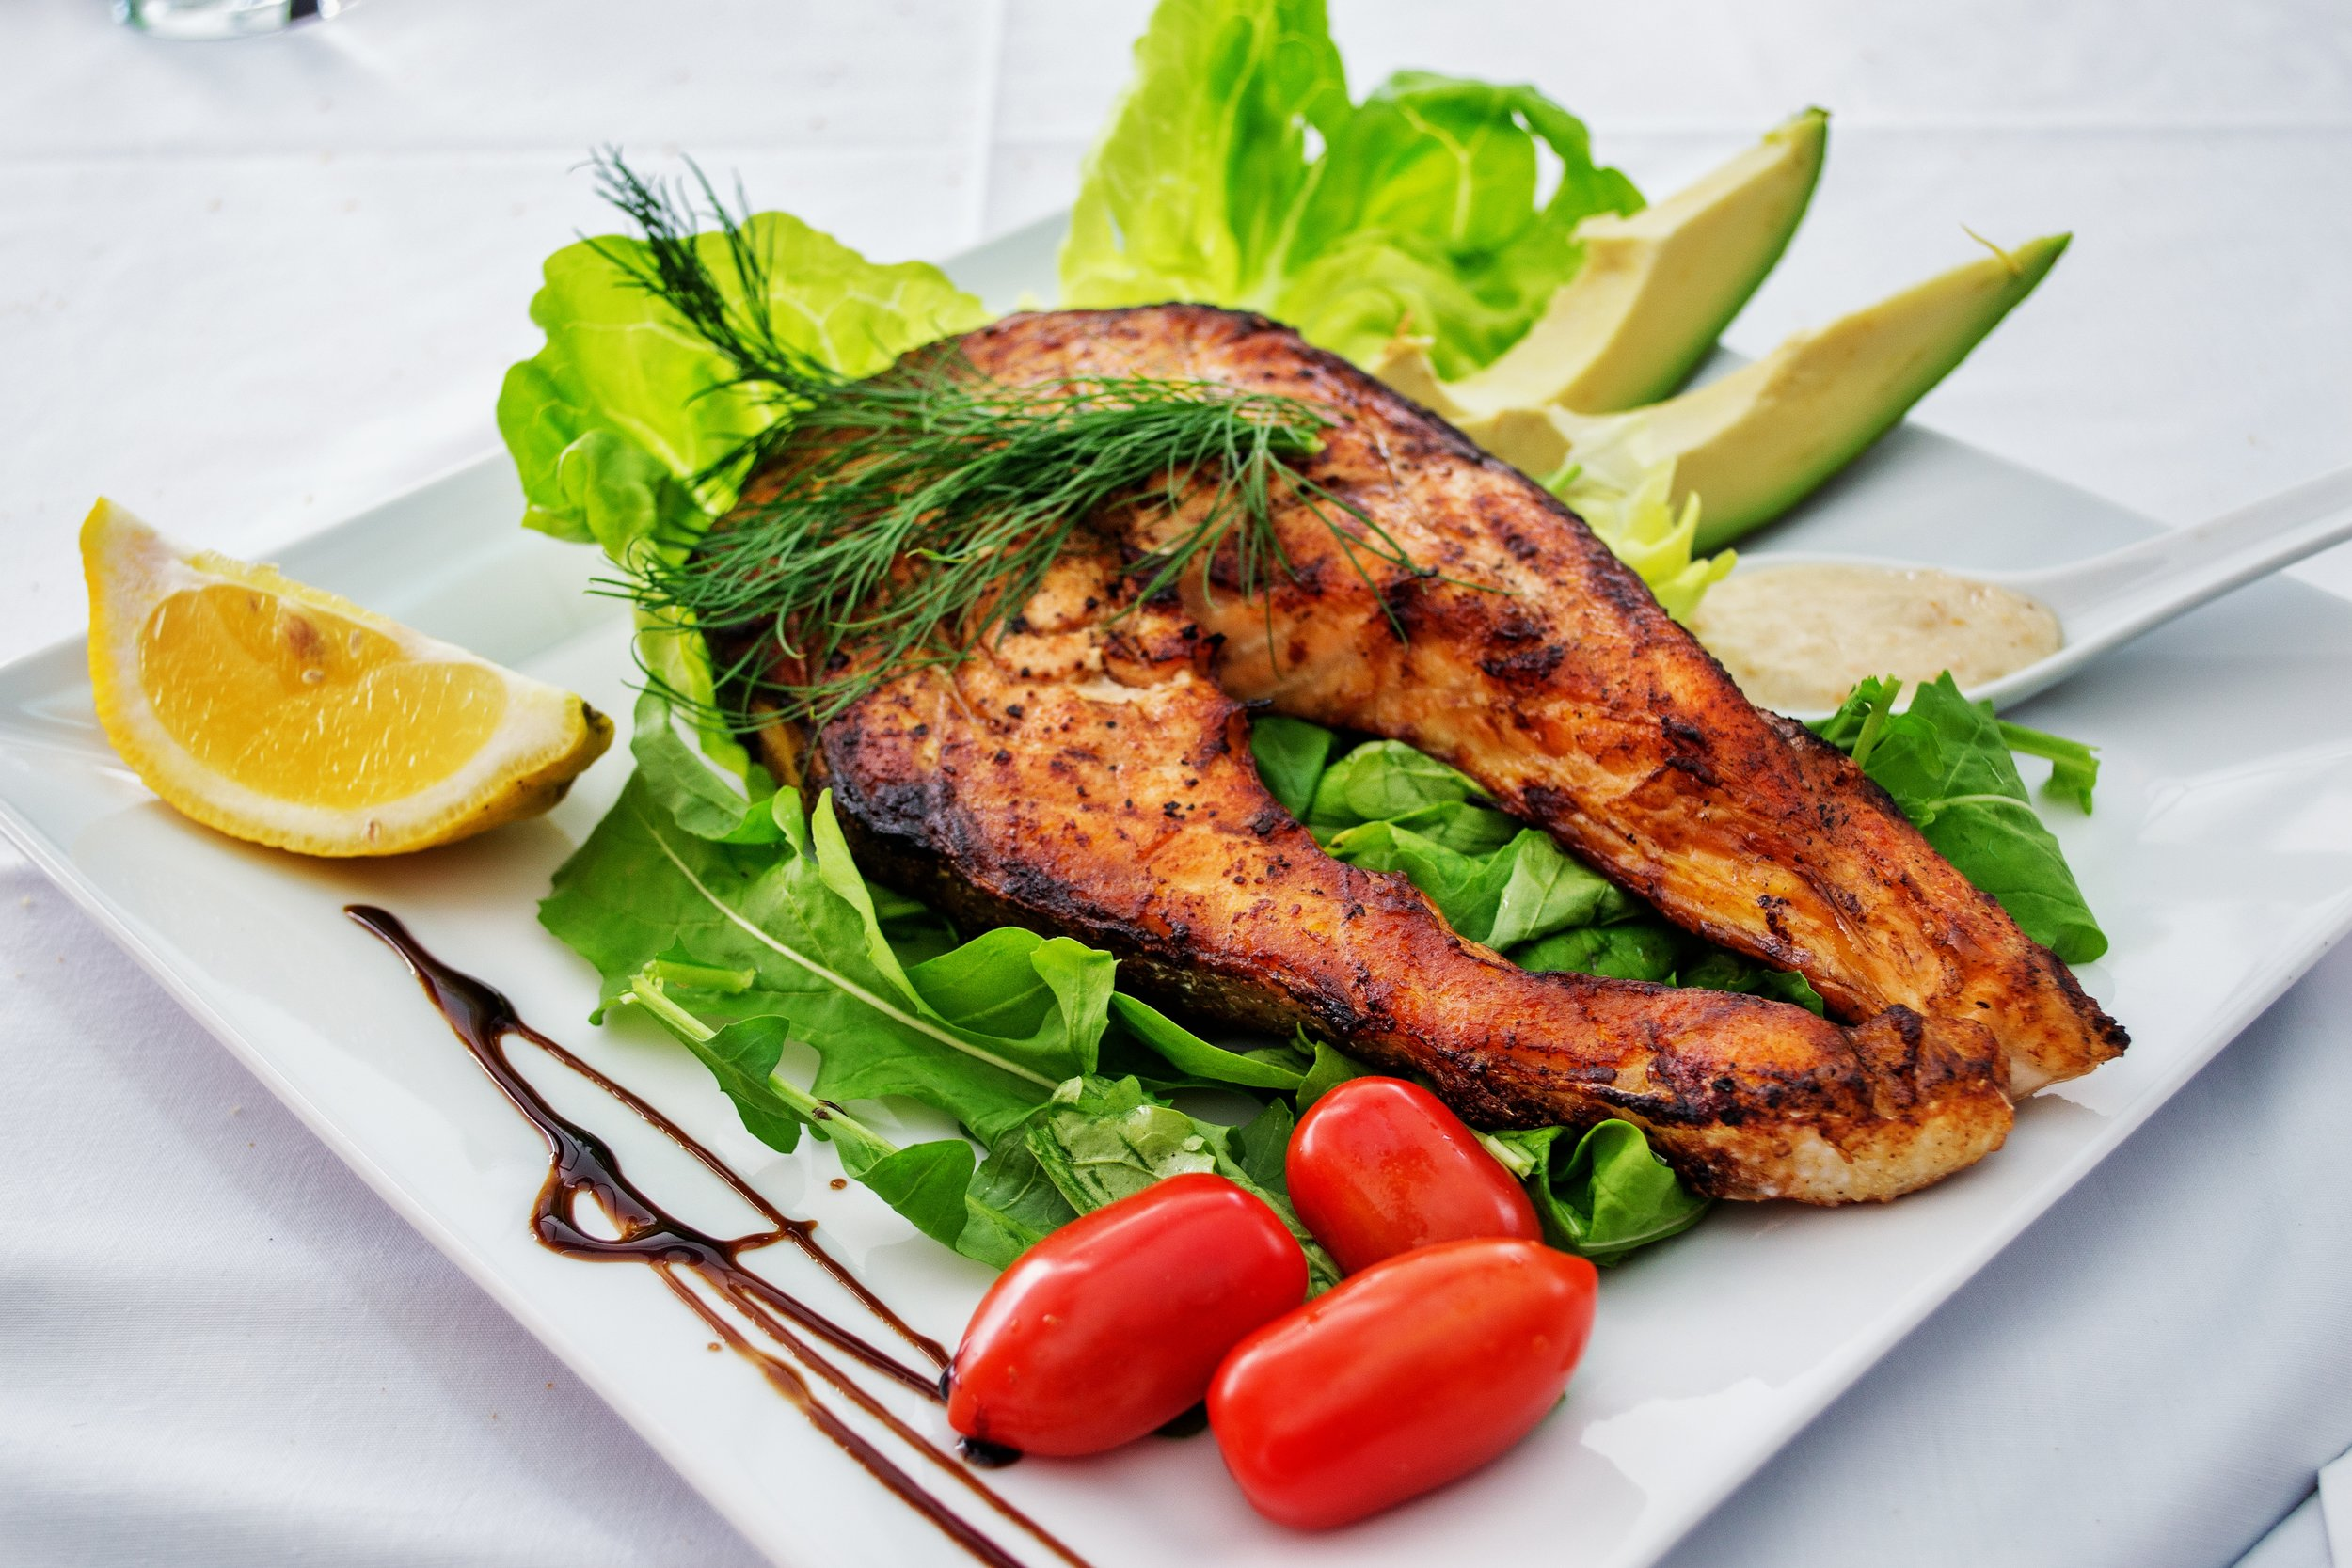 Autoimmune disease or not, fish and vegetables are a couple keys to good health.